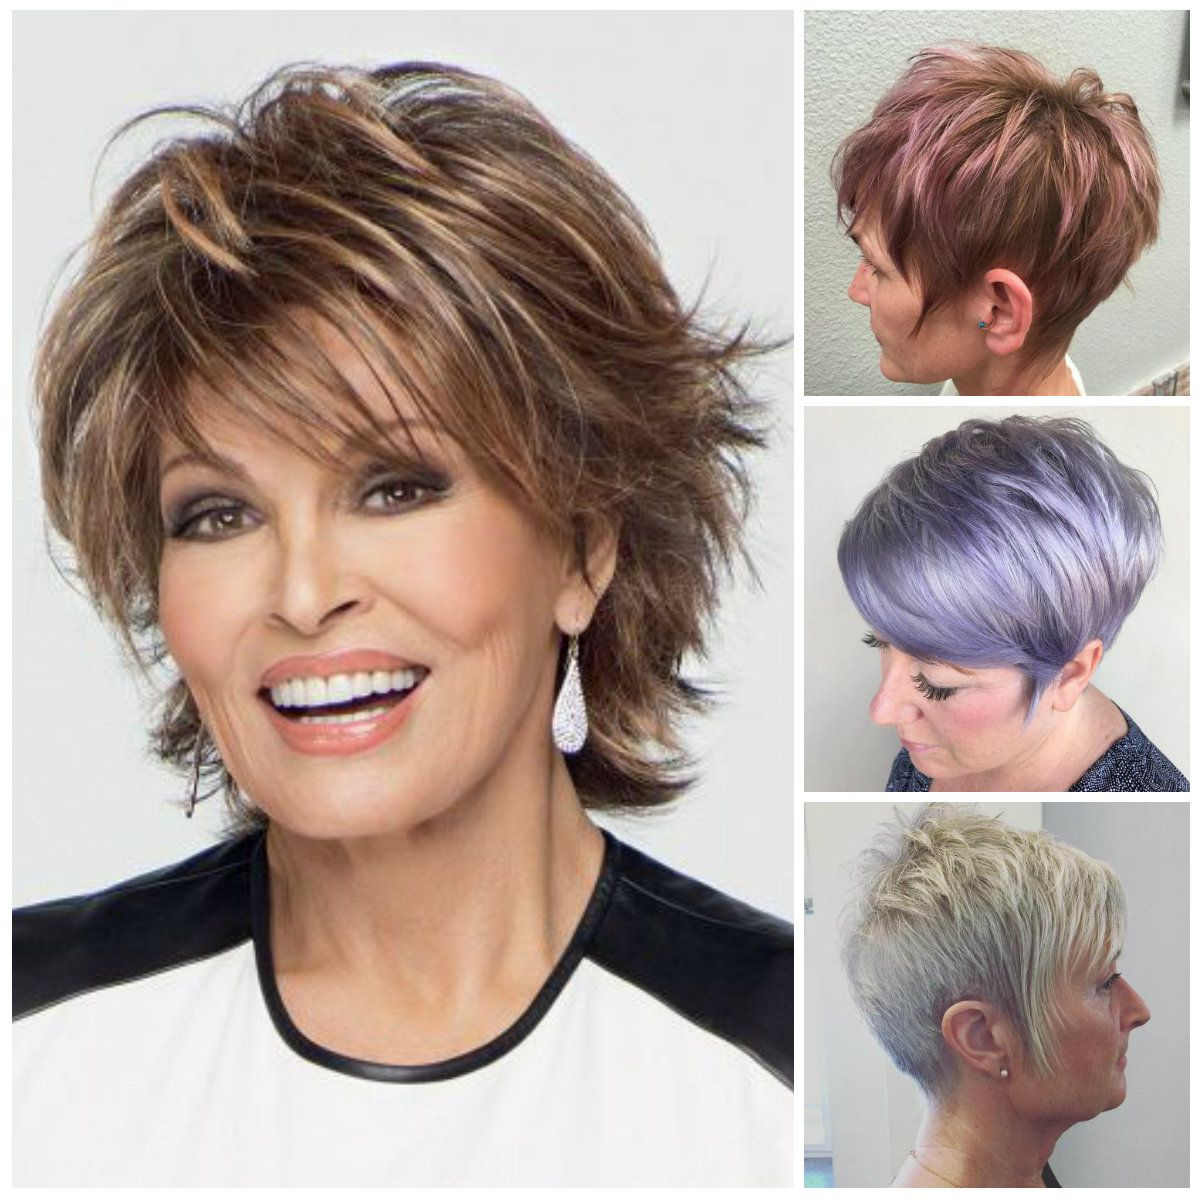 20 Short Hairstyles For 50 Year Old Woman With Thin Hair Fresh 2017 With Regard To Short Hairstyle For 50 Year Old Woman (View 18 of 25)